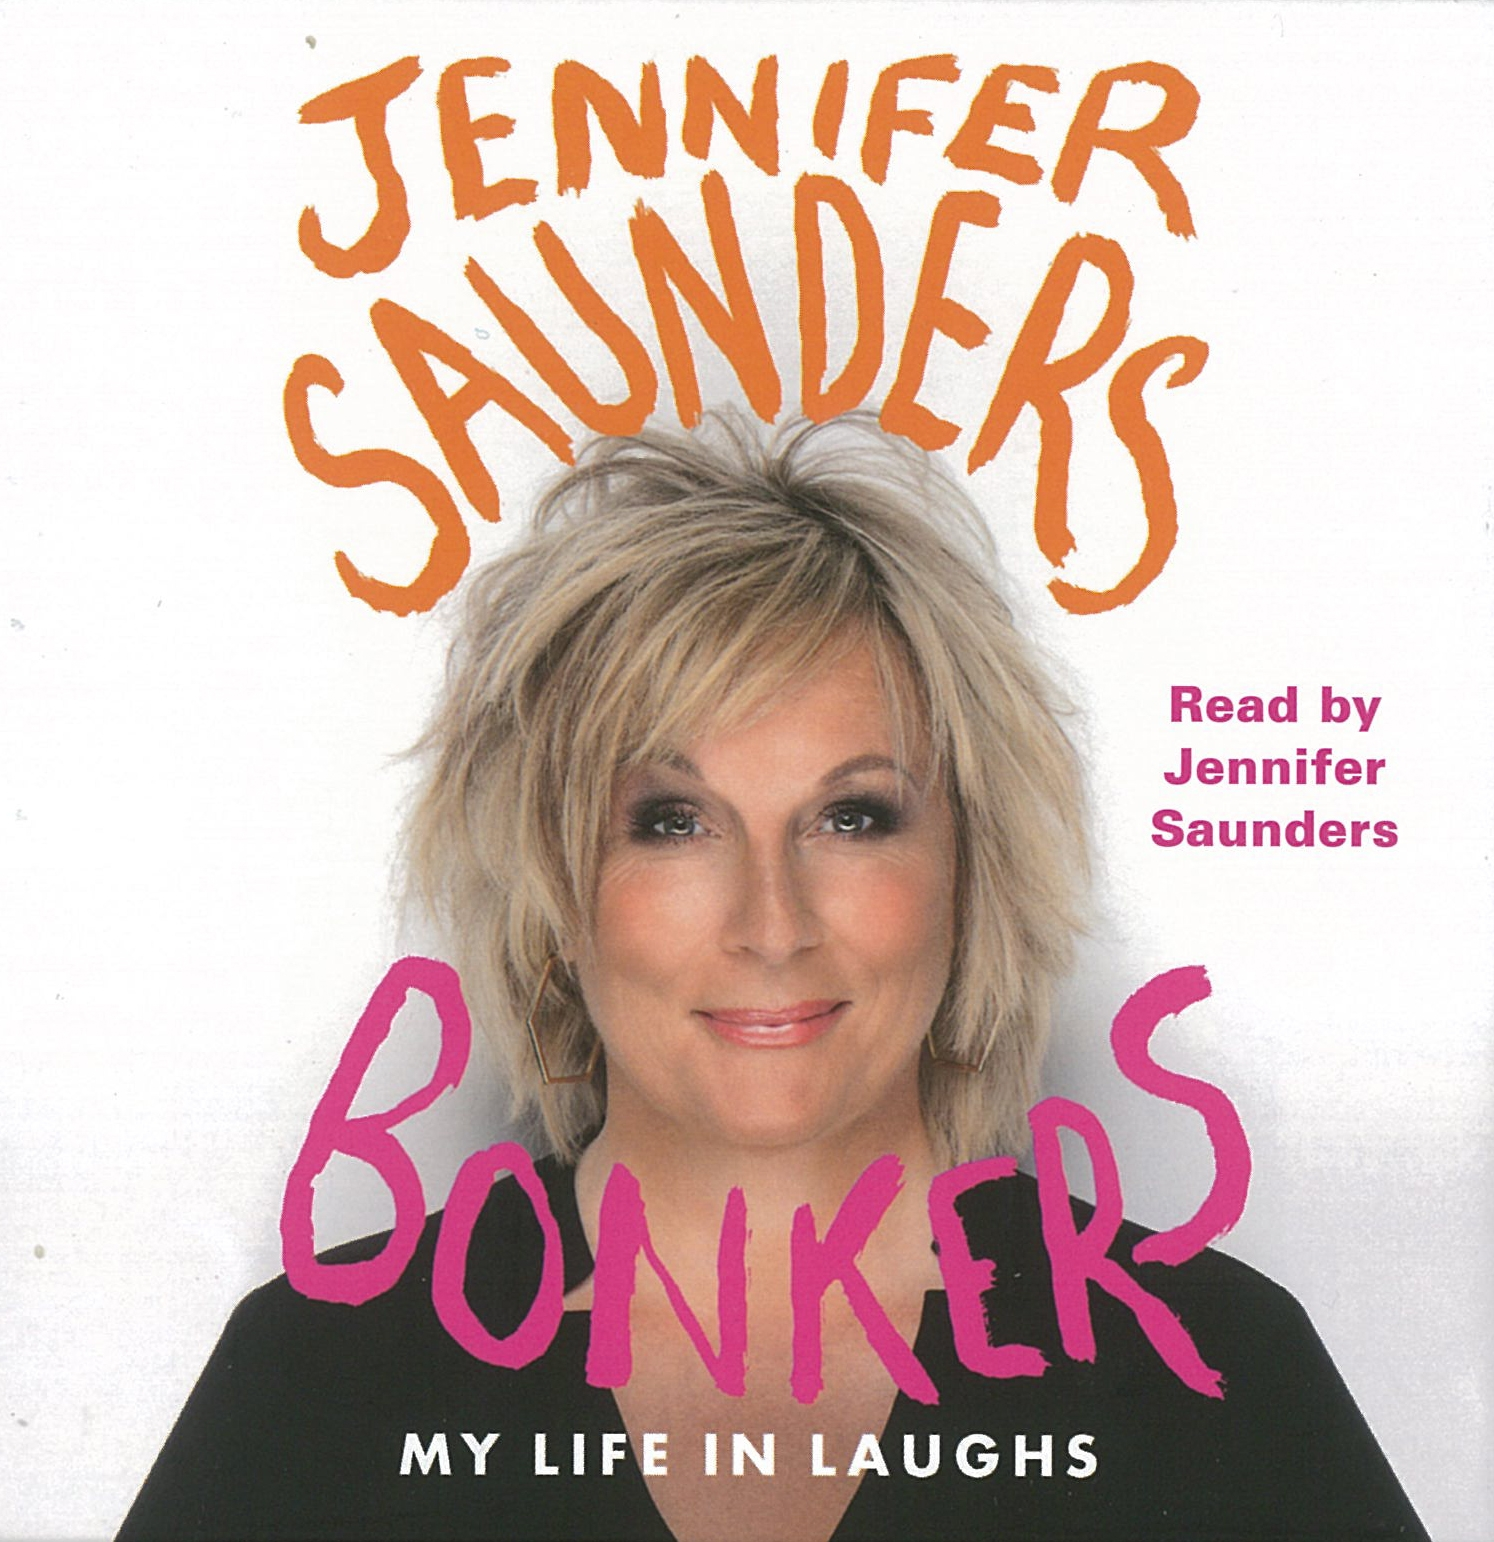 My Life In Laughs - Jennifer Saunders